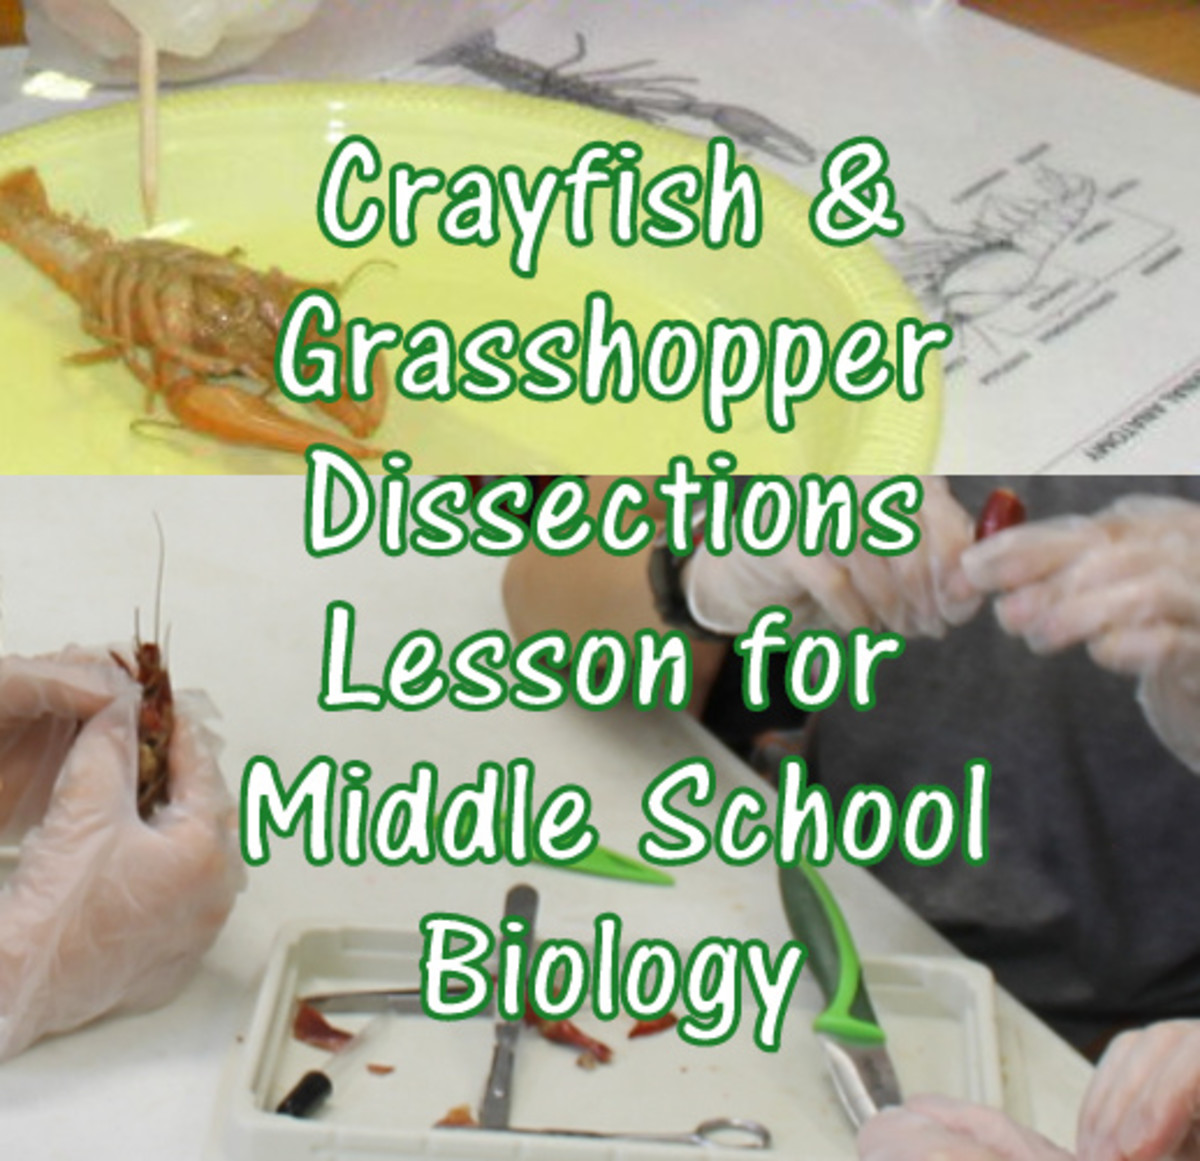 Grasshopper & Crayfish Dissection Lesson for Middle School Biology